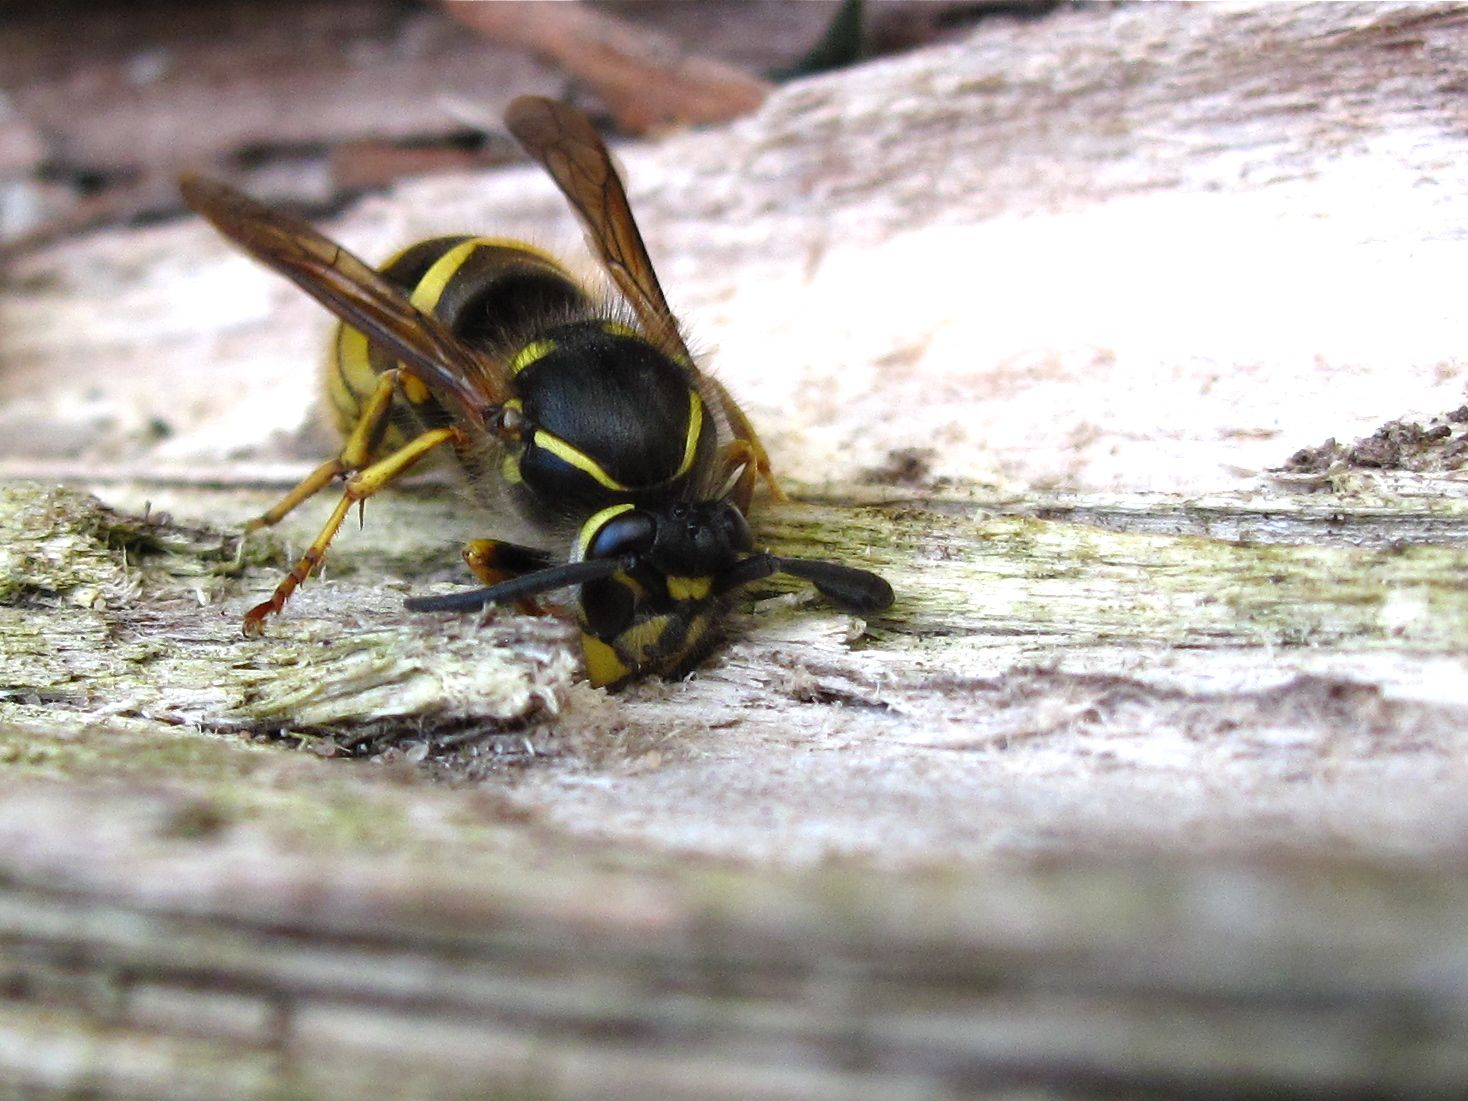 Queen Paper Wasp Queen common wasps (vespula